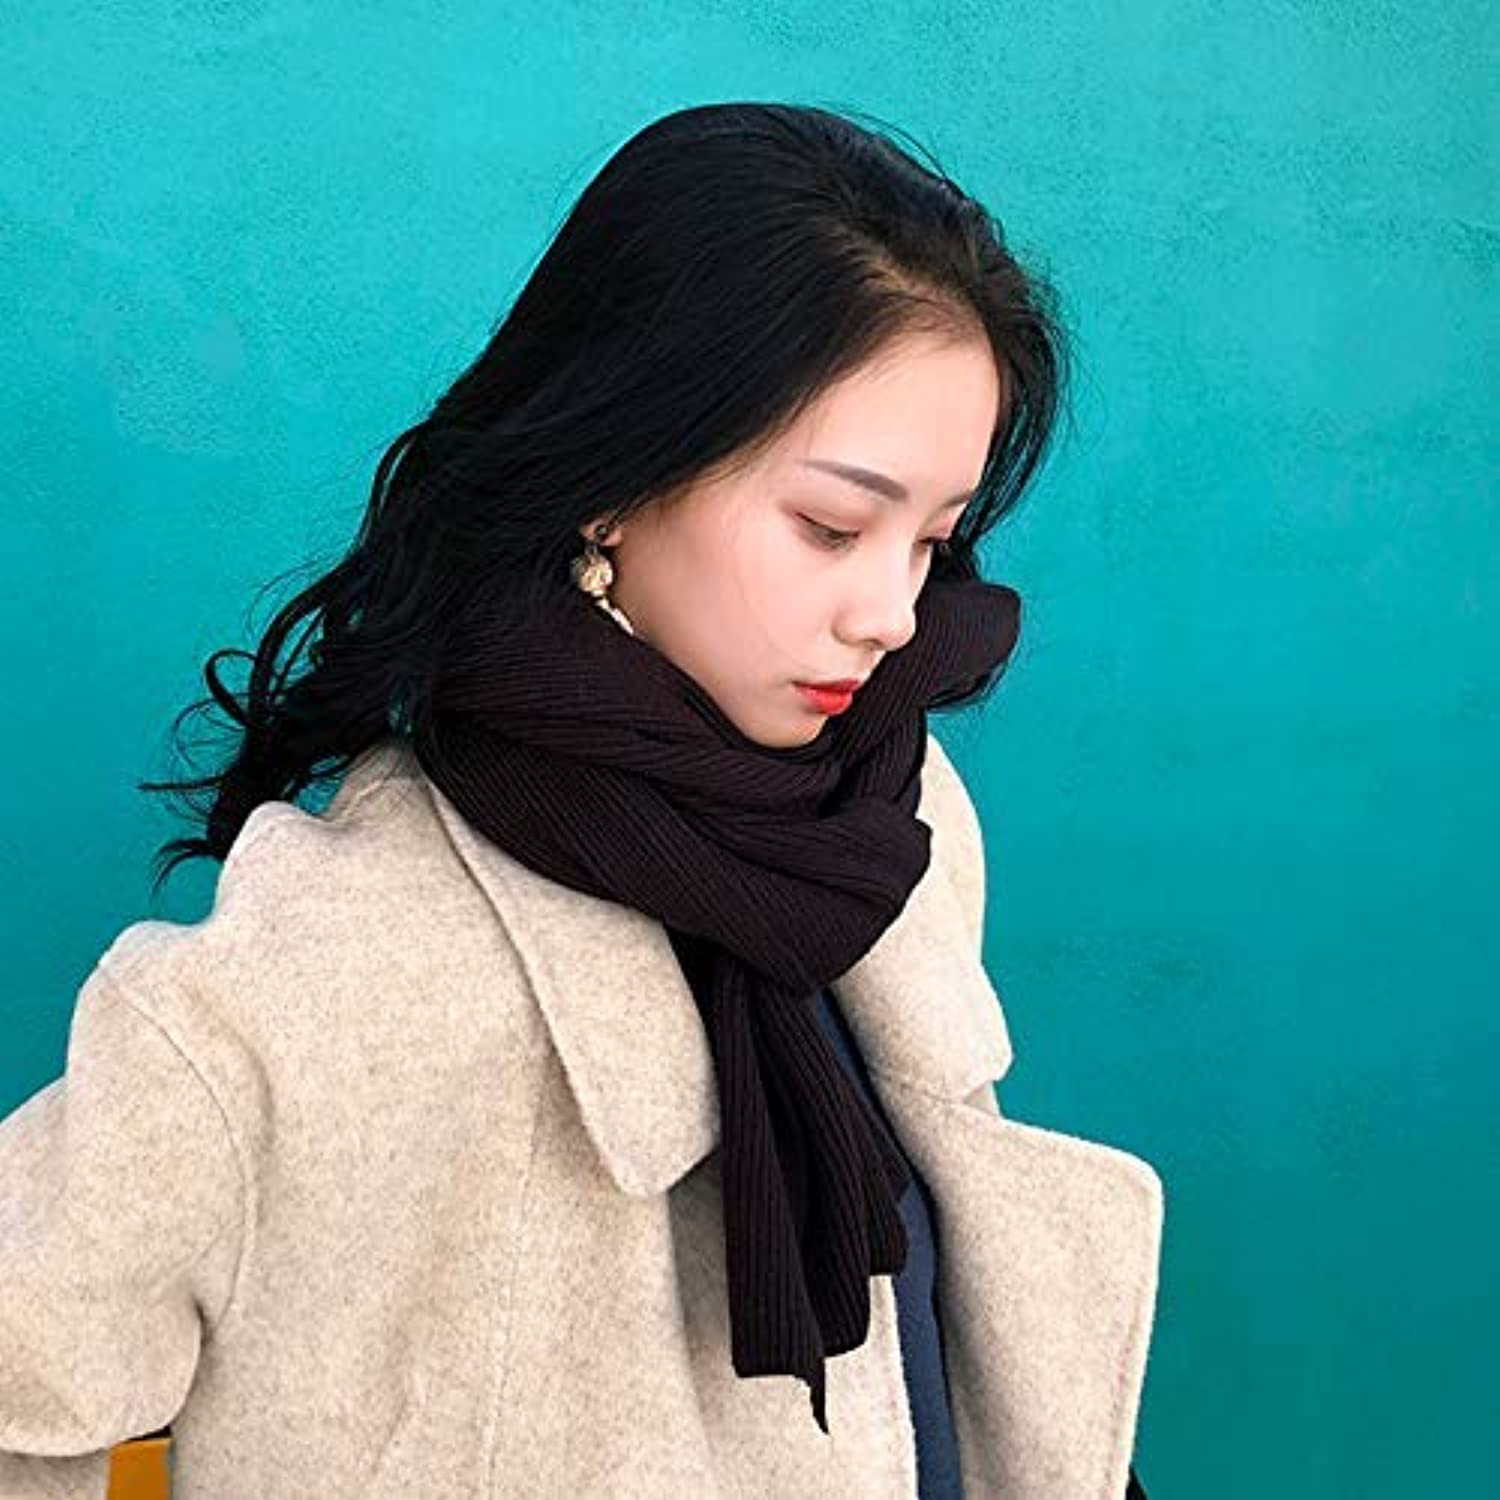 145612ed7e Scarf for Gift Scarf Women's Autumn and Winter Knit Solid color ...